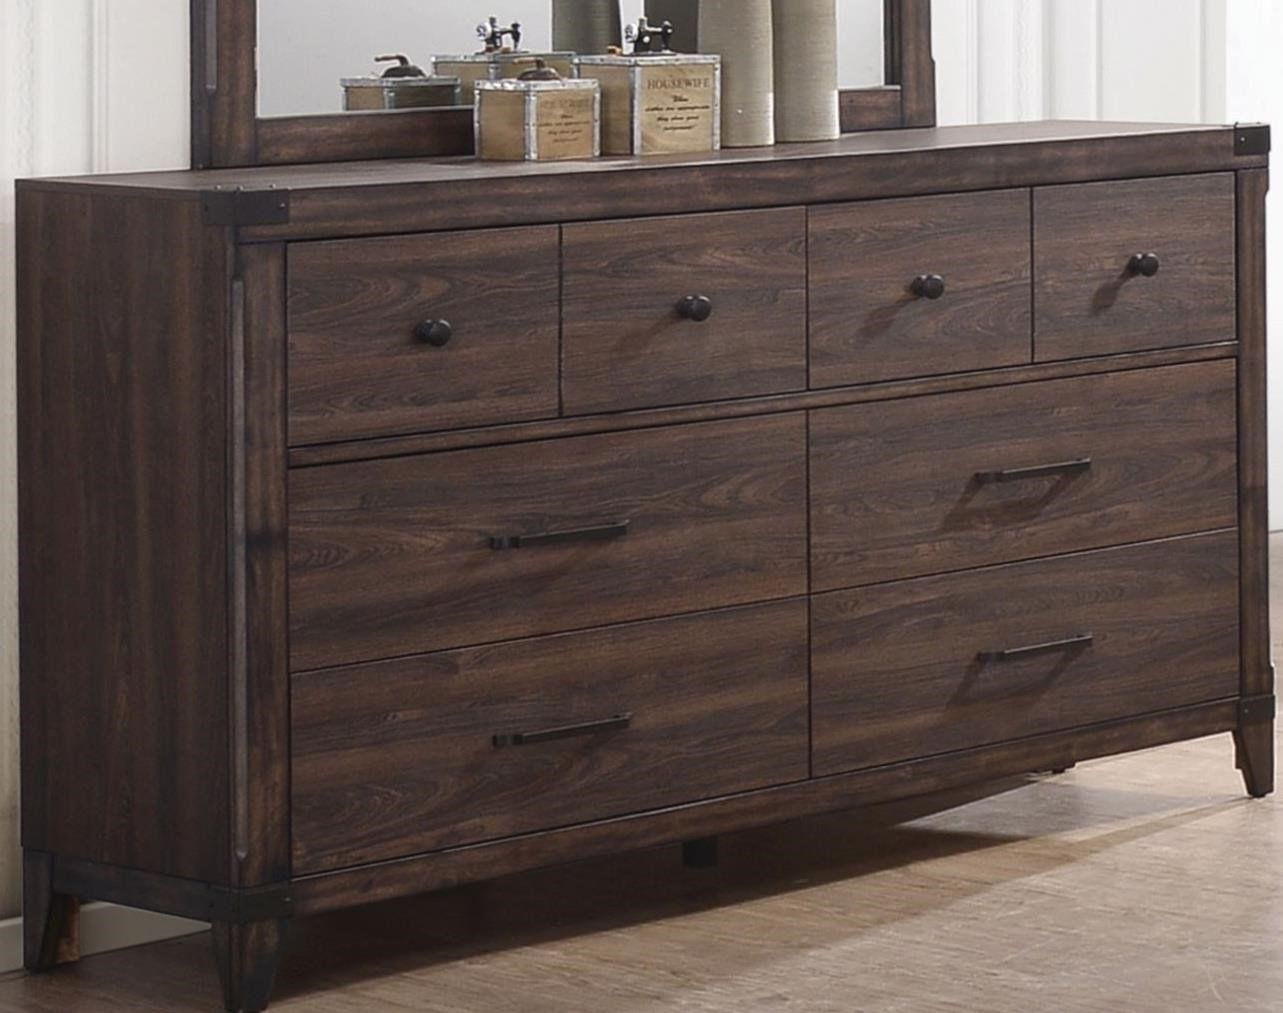 Dark Grey Oak Richmond Collection Bedroom Furniture 4pc Set Eastern King Size Bed W Storage Drawers Fb Elegant Rustic Dresser Wooden Dresser Coaster Furniture